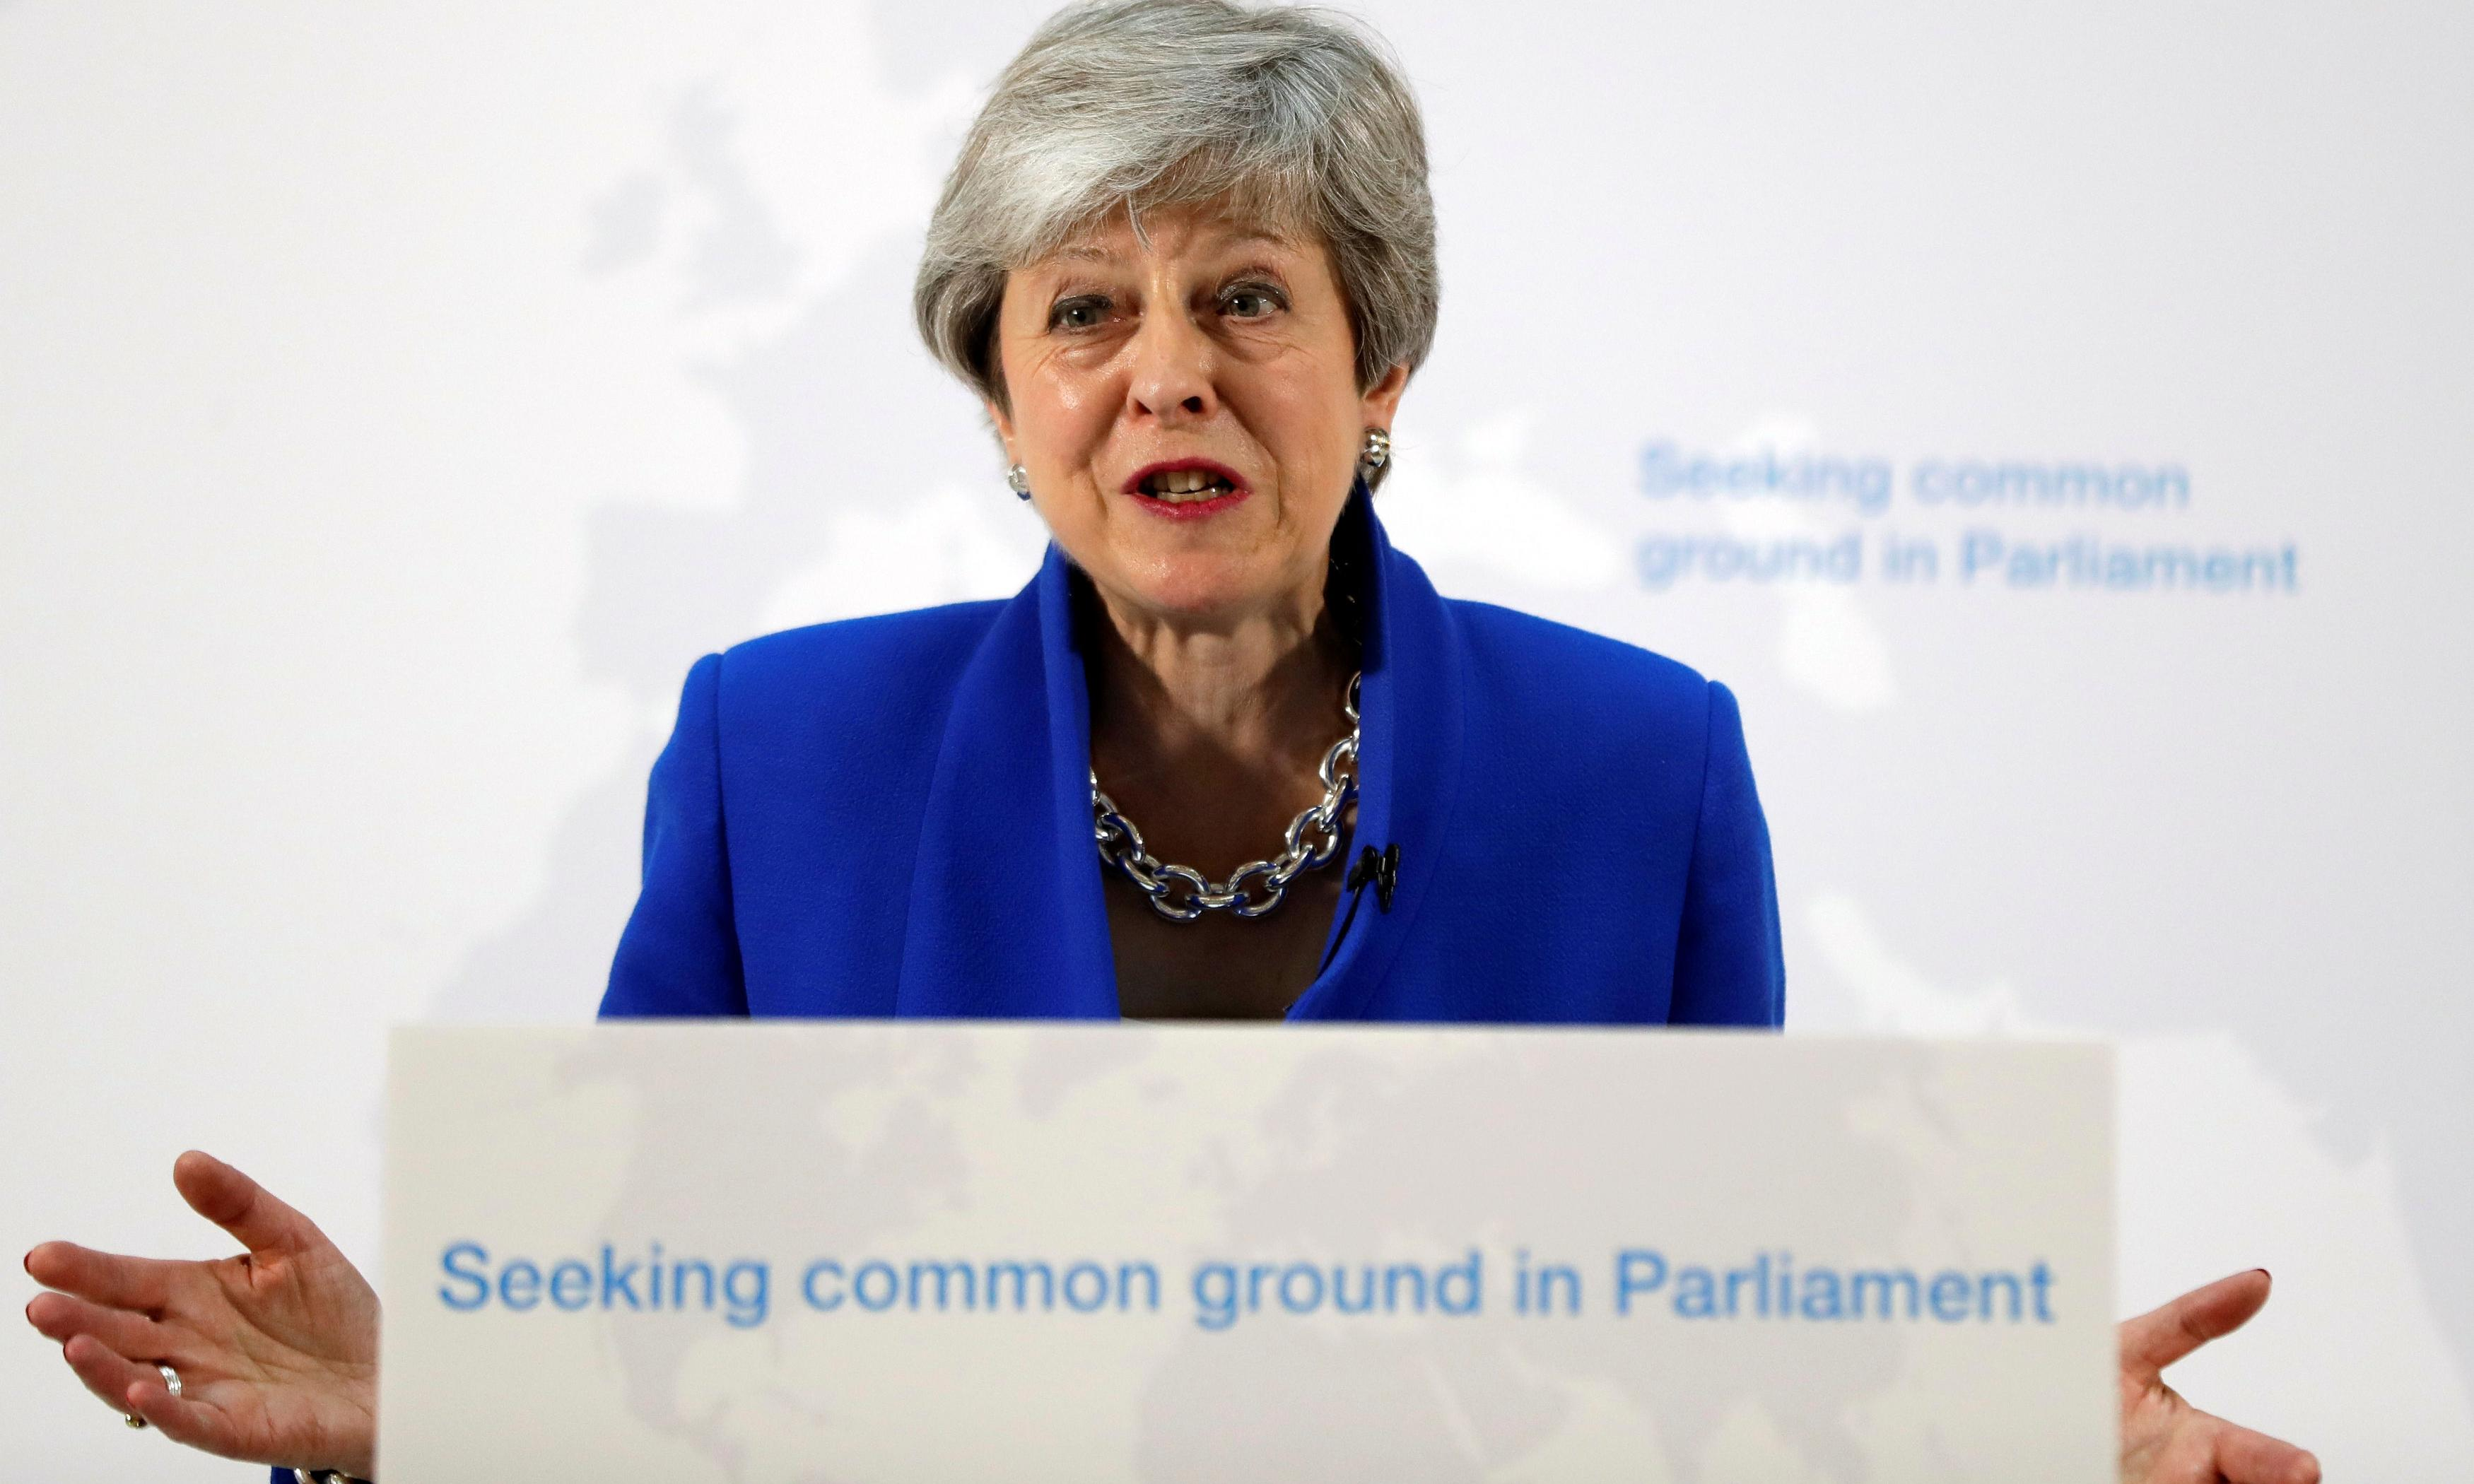 Brexit is a sham, but Theresa May just won't admit it